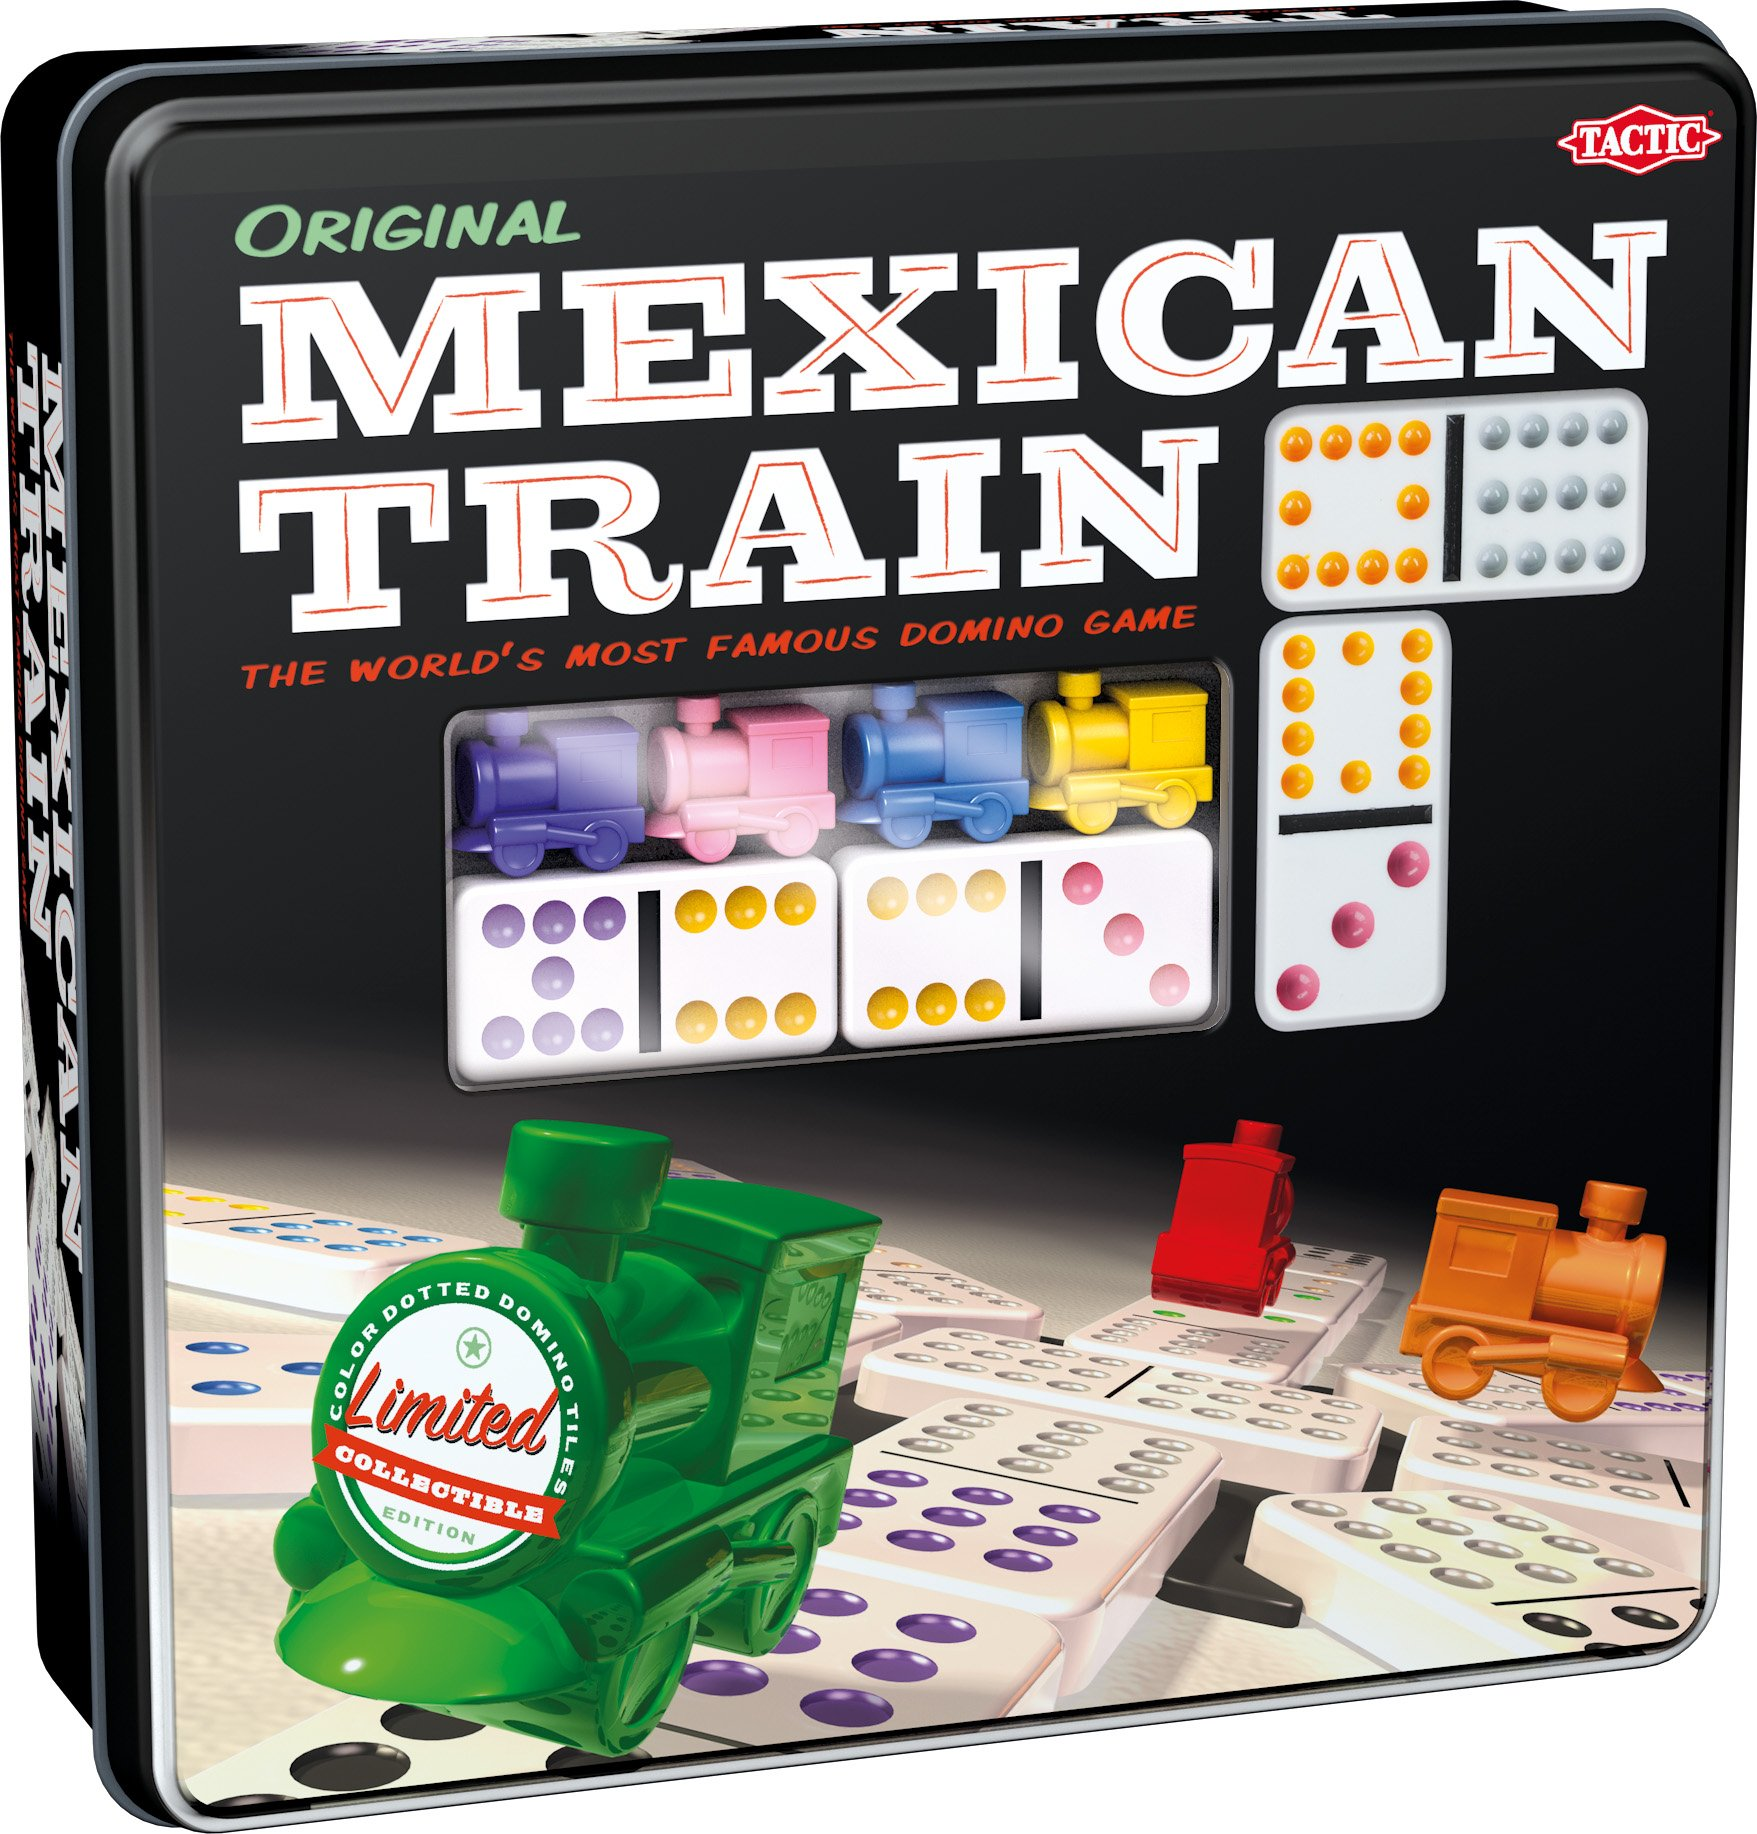 Mexican Train - Game Forup to 8 Players Dominoes - Double-Twelve Domino Set - Colour-Dot Dominoes for Easy Play. World'S Most Popular Domino Game, from Tactic by Tactic Games US